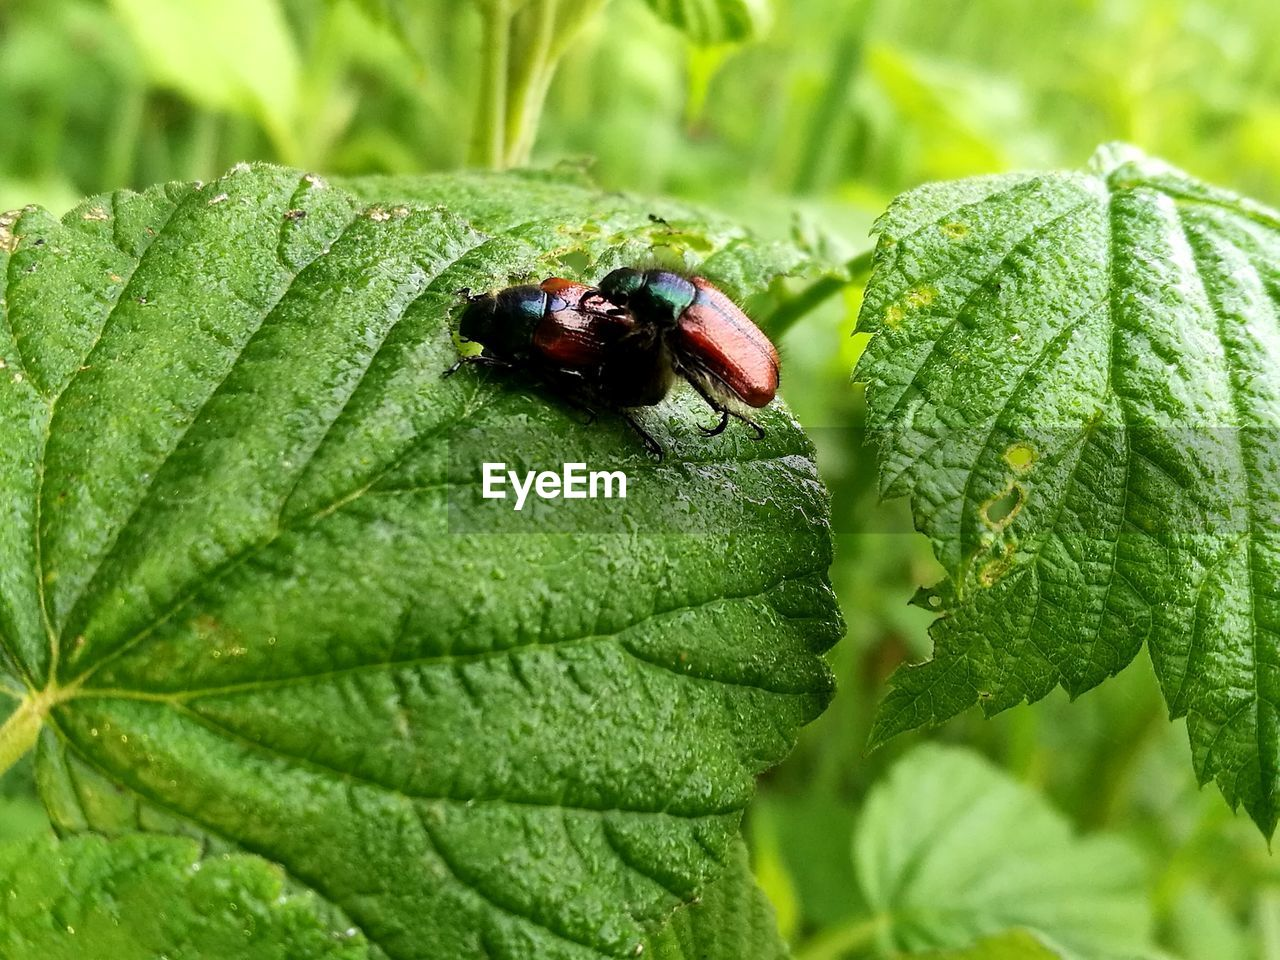 leaf, green color, insect, animal themes, animals in the wild, one animal, close-up, day, nature, no people, plant, ladybug, outdoors, growth